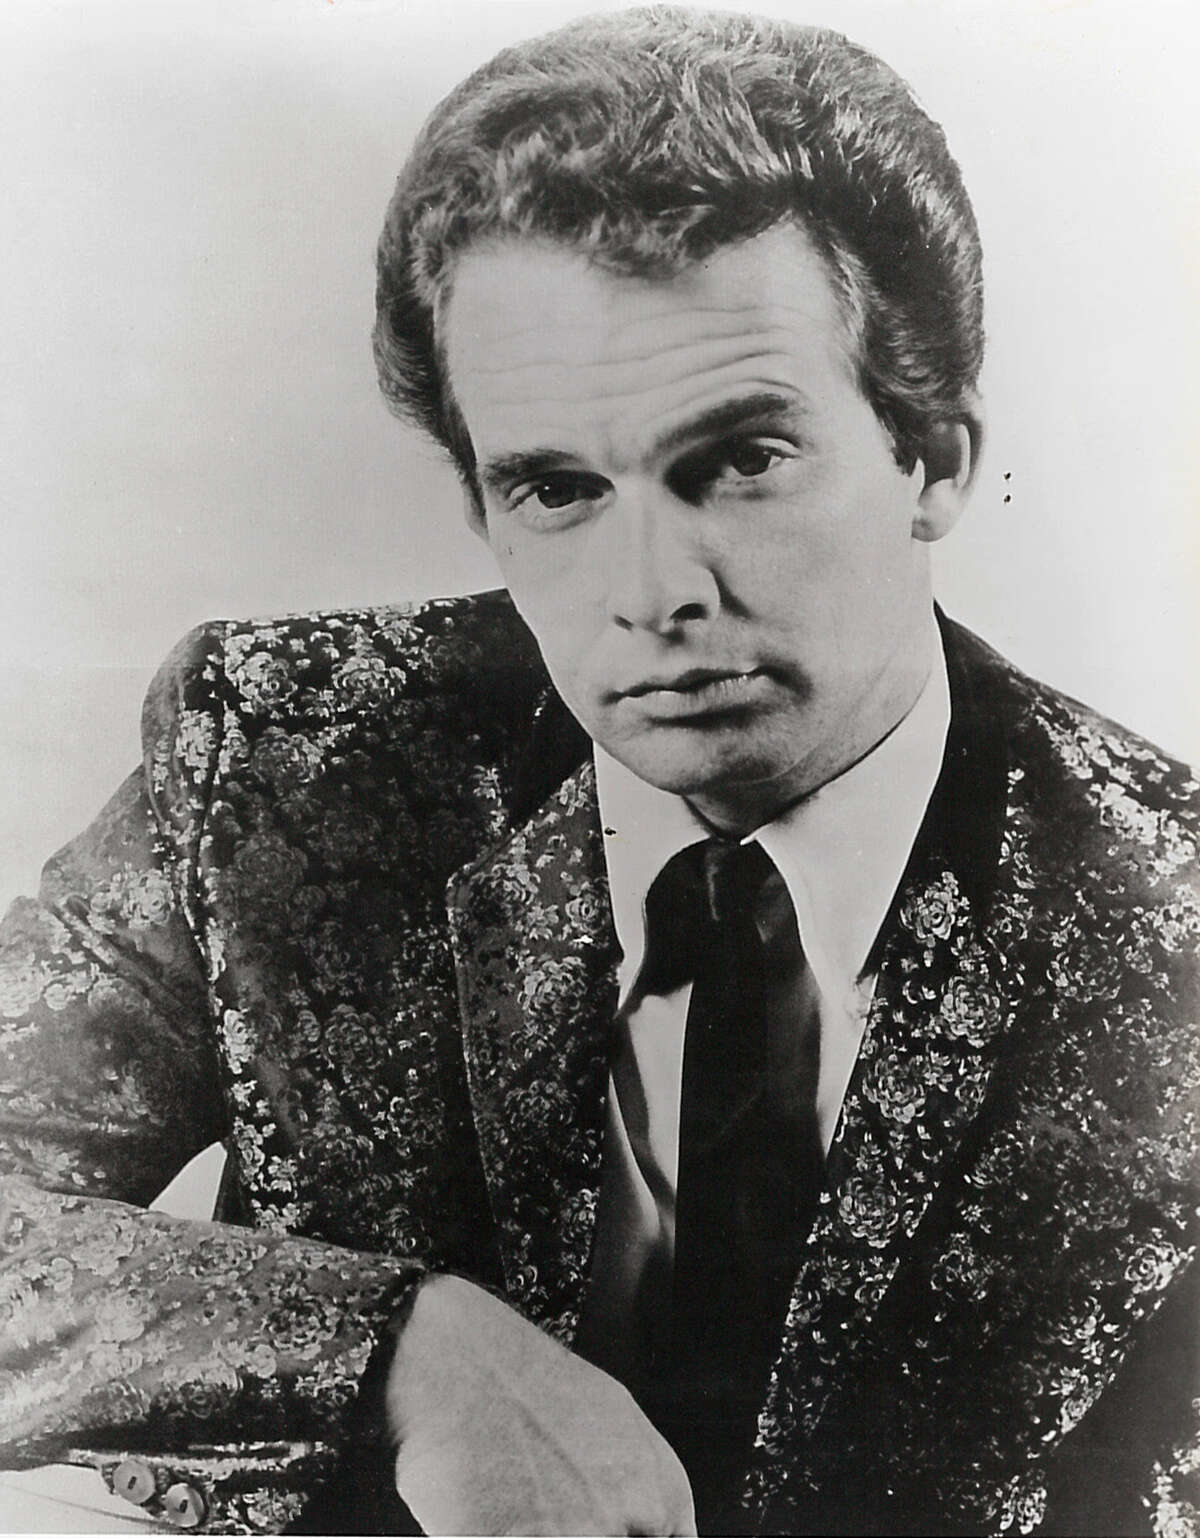 Merle Haggard (b. 1937): Country music legend, former San Quentin resident.